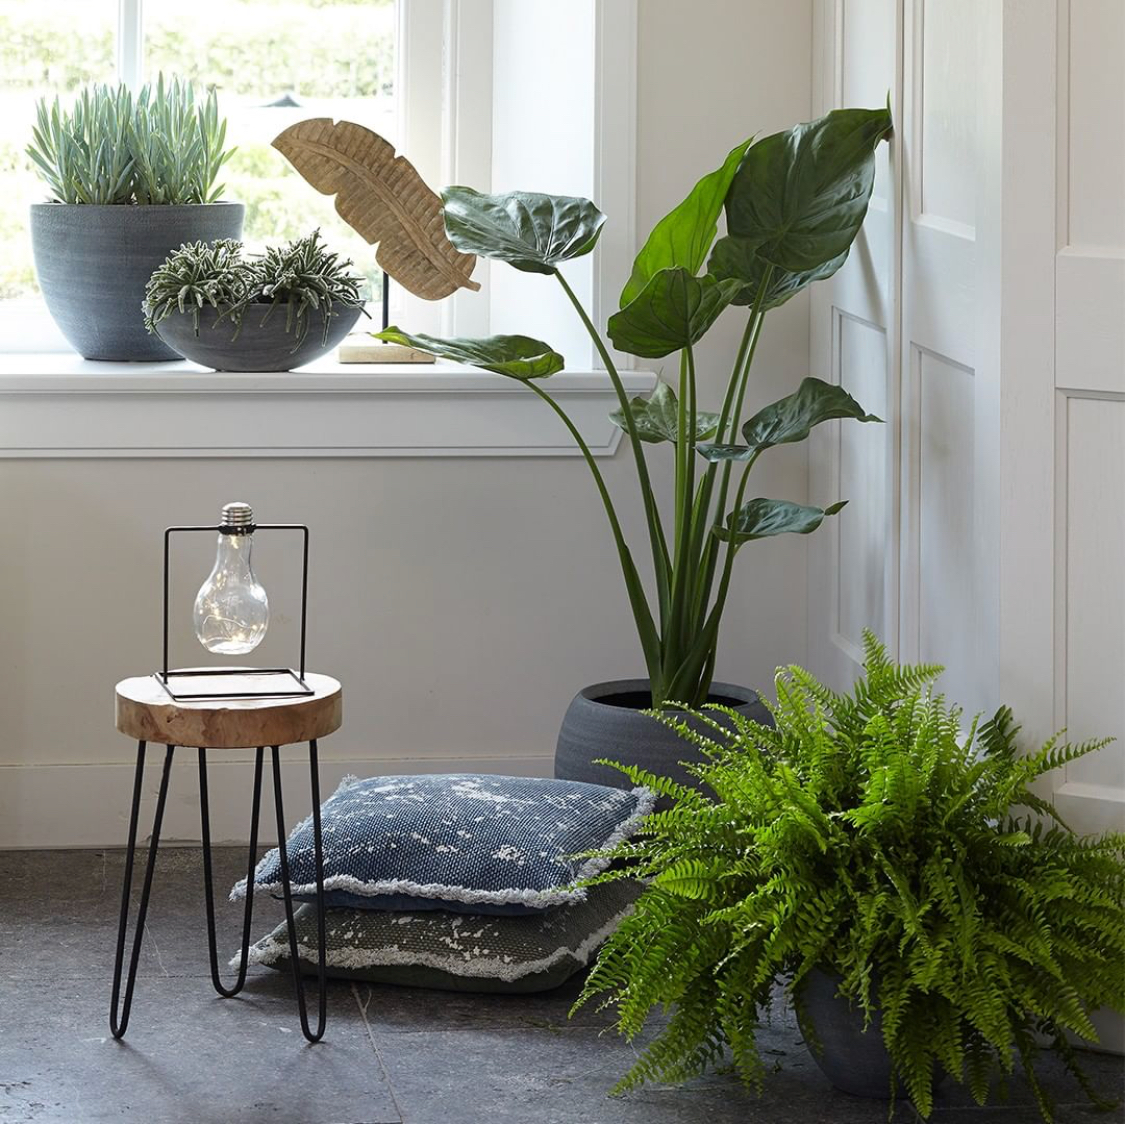 Http://interieur-tips.nl Img 8078 Welke Planten In De Vensterbank Ts Collection